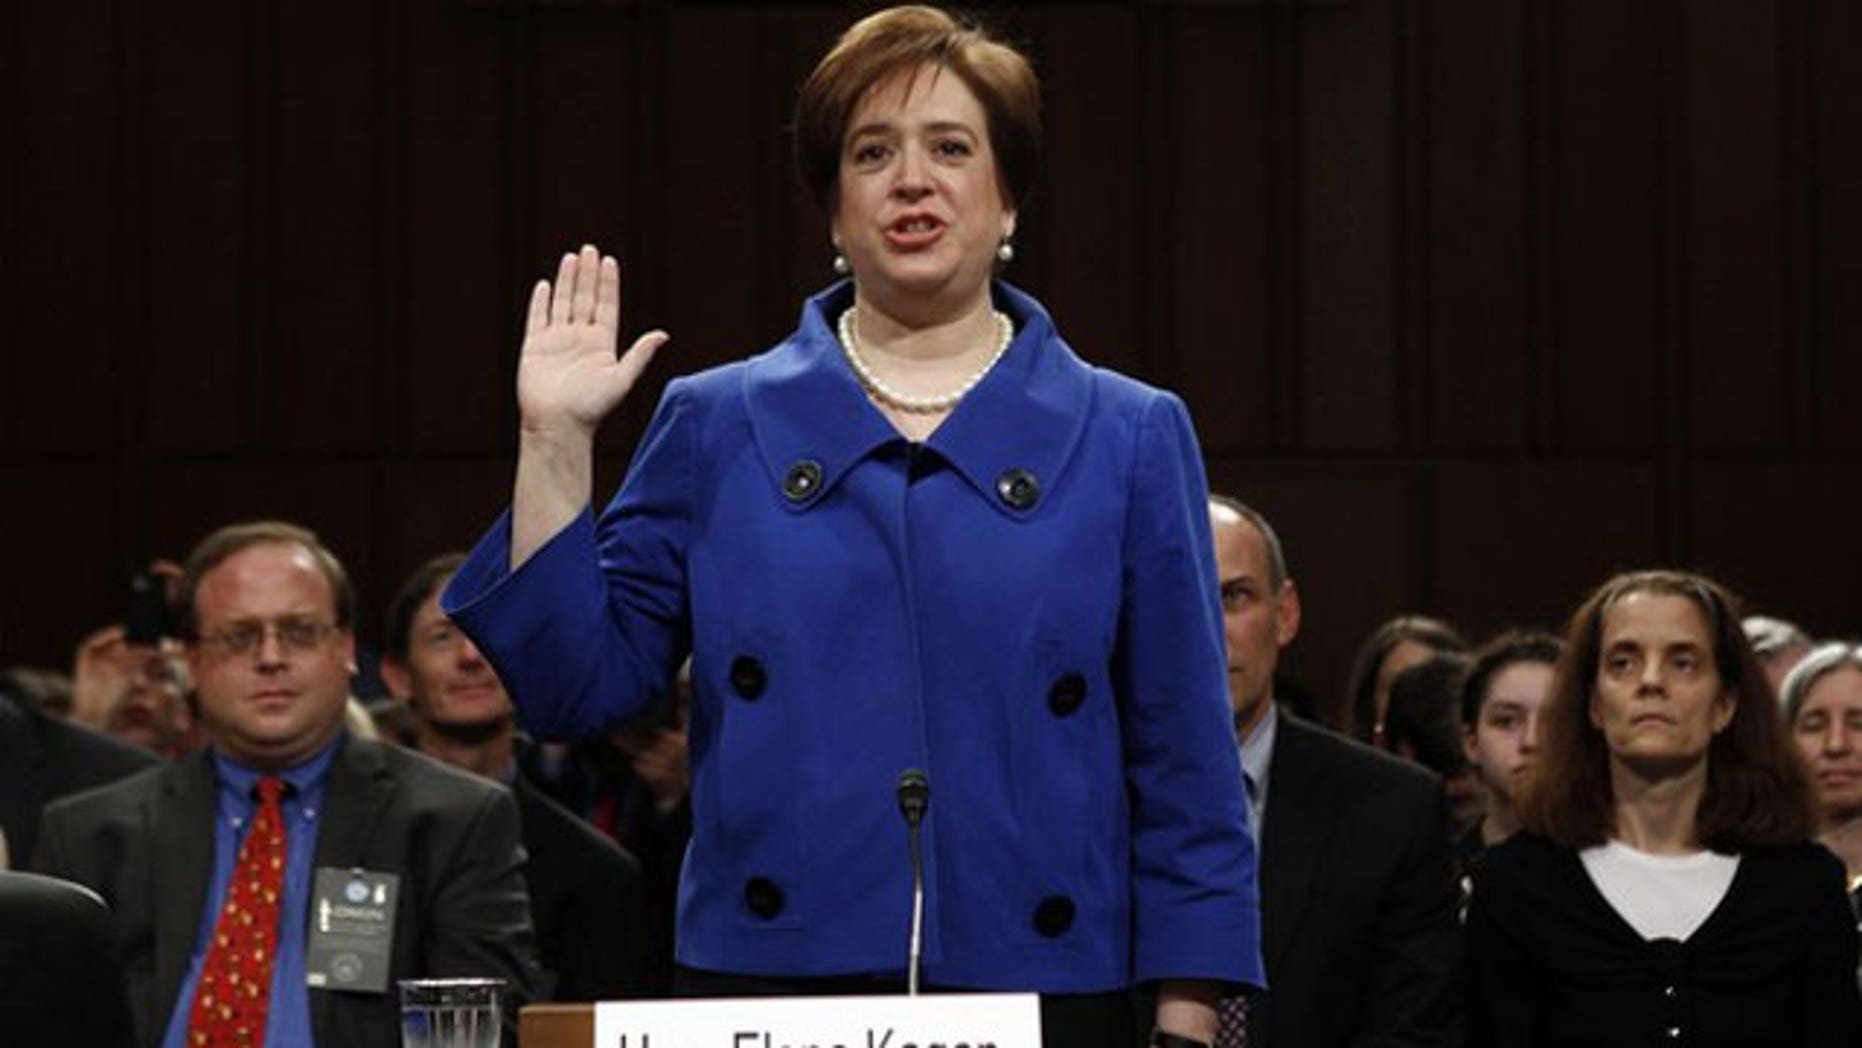 June 28: U.S. Supreme Court nominee Elena Kagan is sworn in to testify during the first day of her Senate Judiciary Committee confirmation hearings on Capitol Hill in Washington (Reuters).